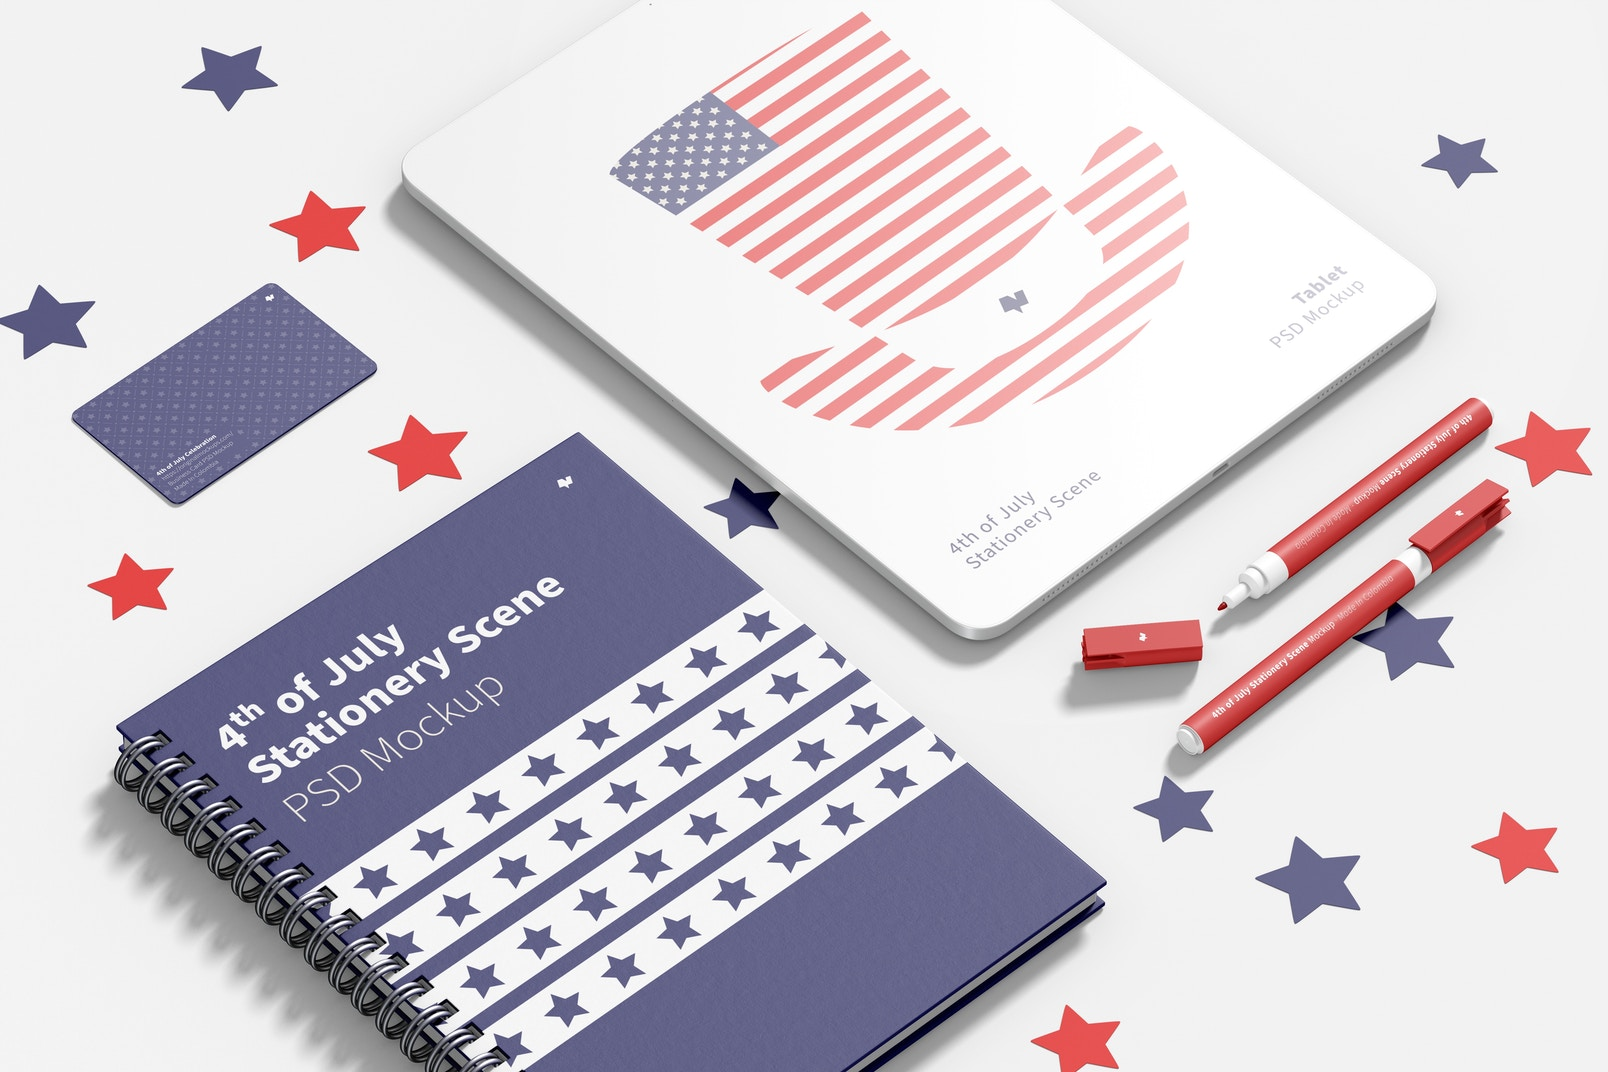 4th of July Stationery Scene Mockup, Perspective